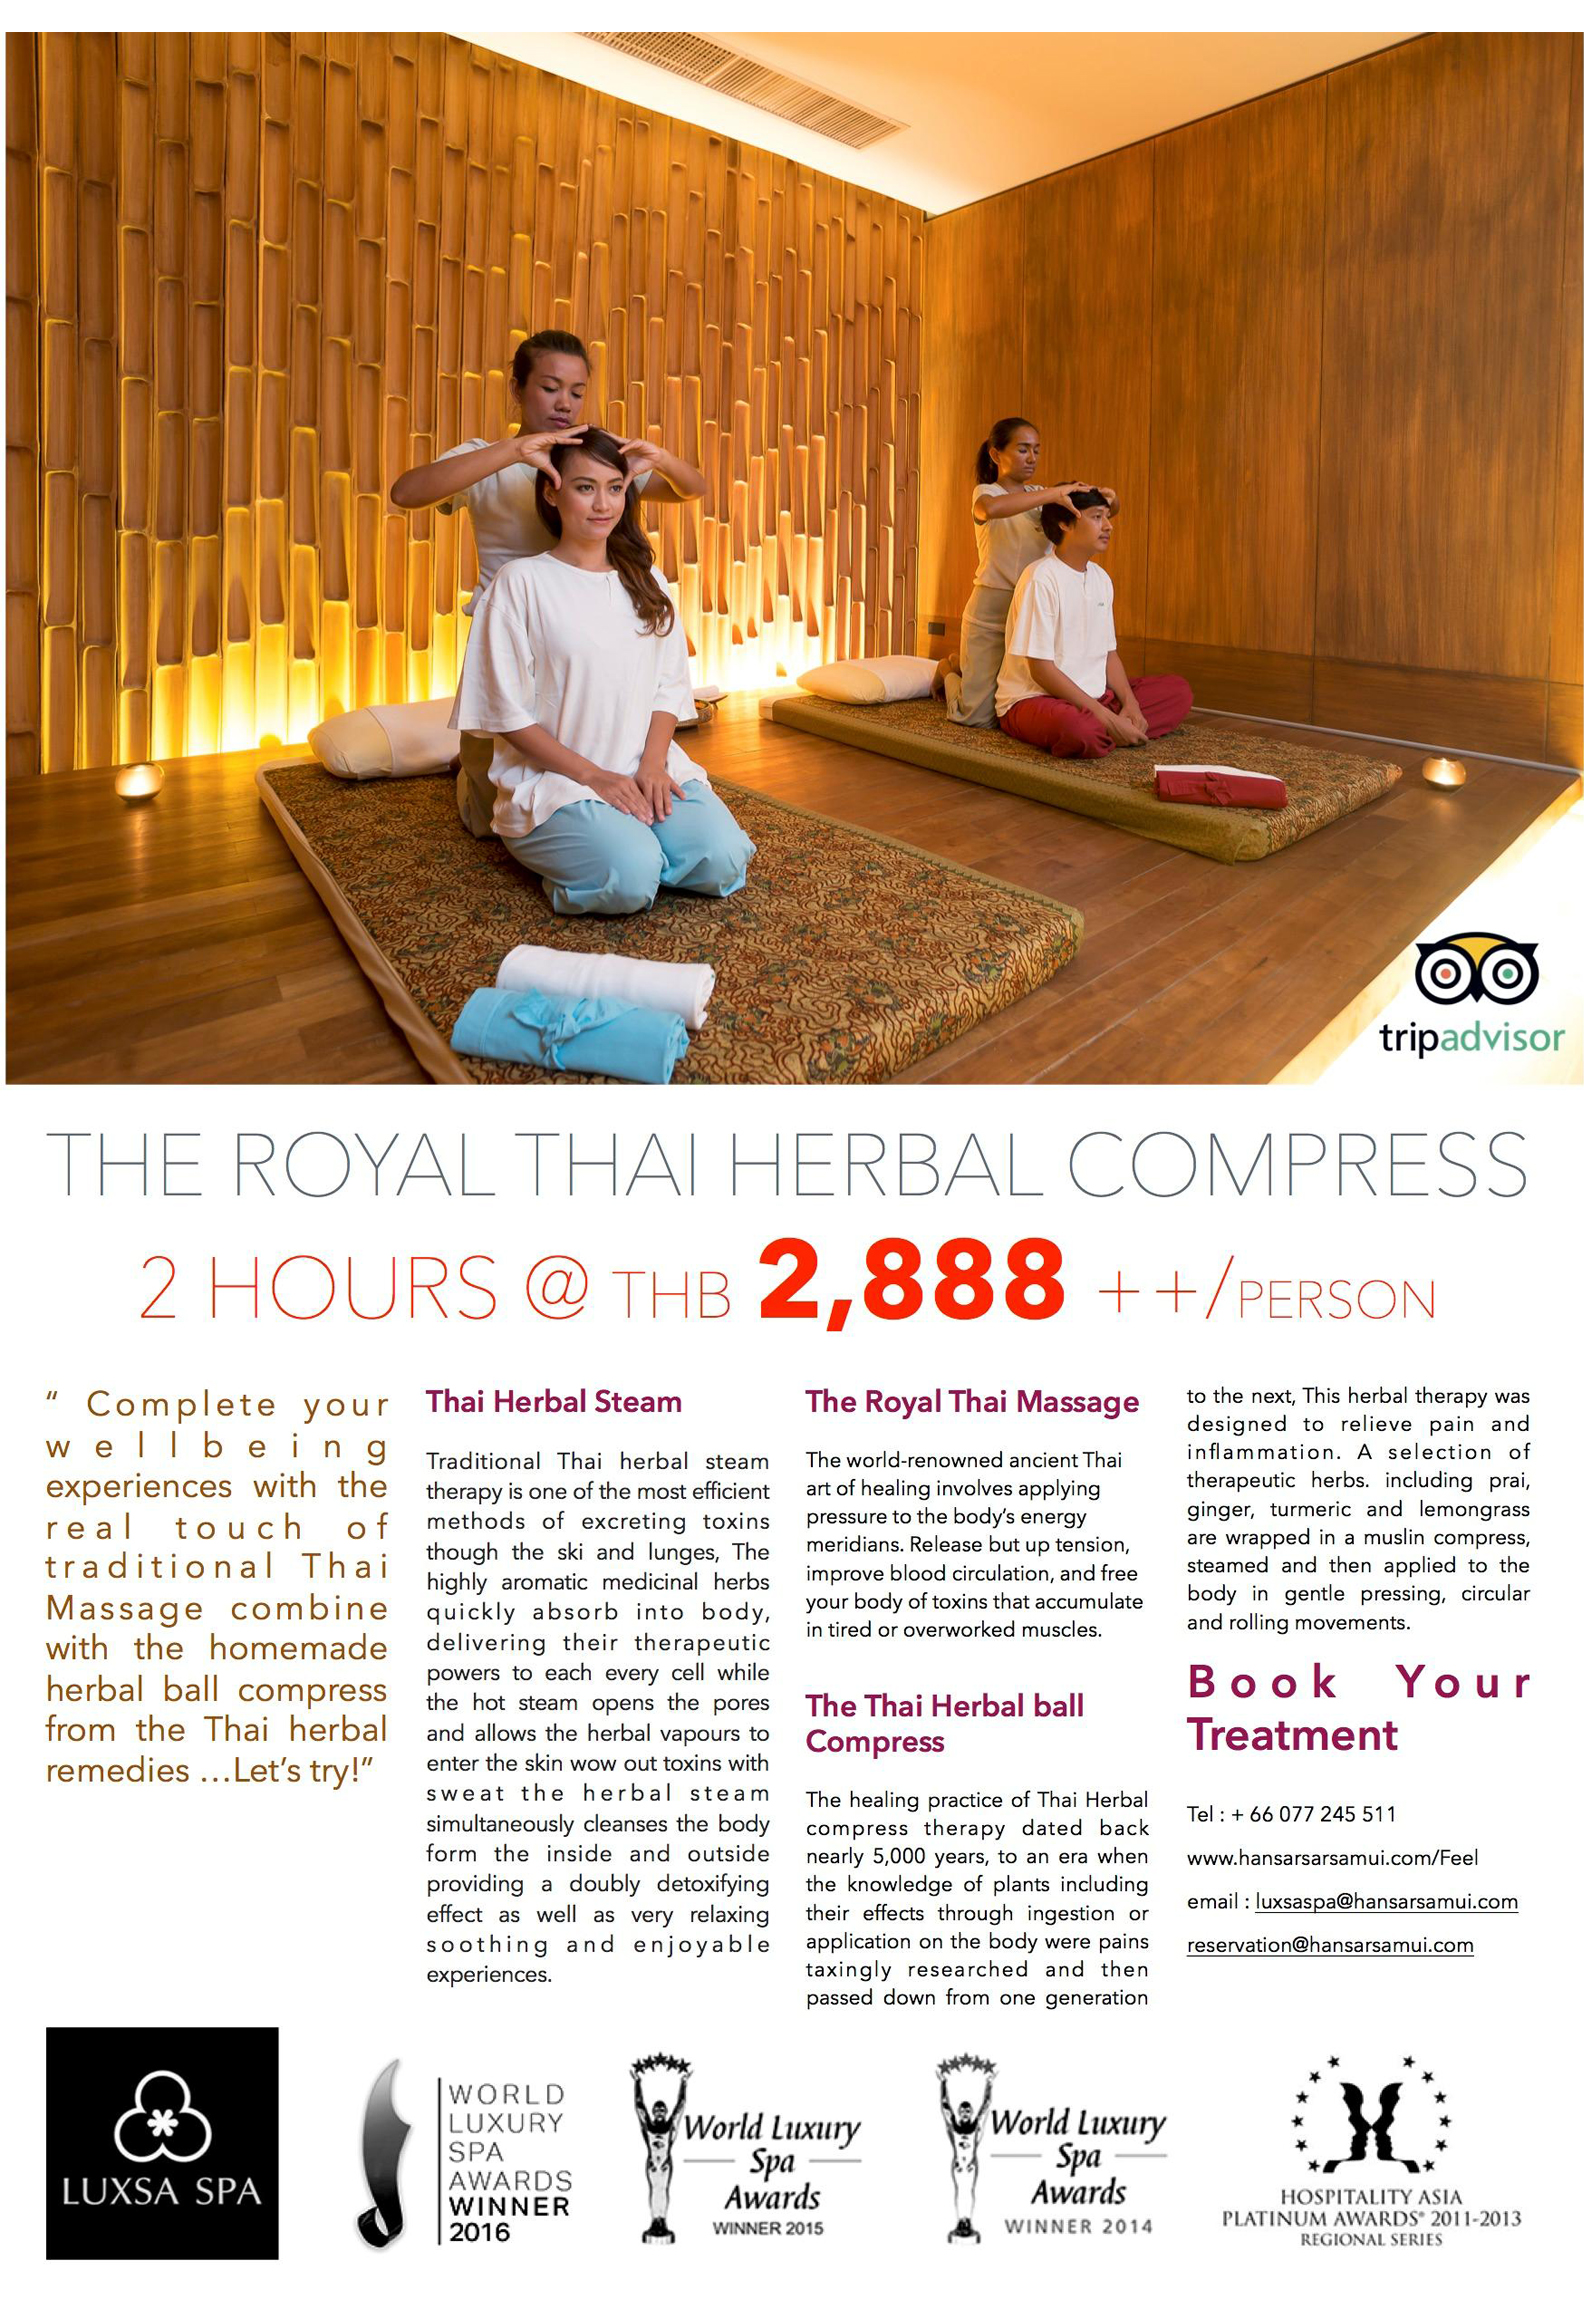 The Royal Thai Herbal Compress